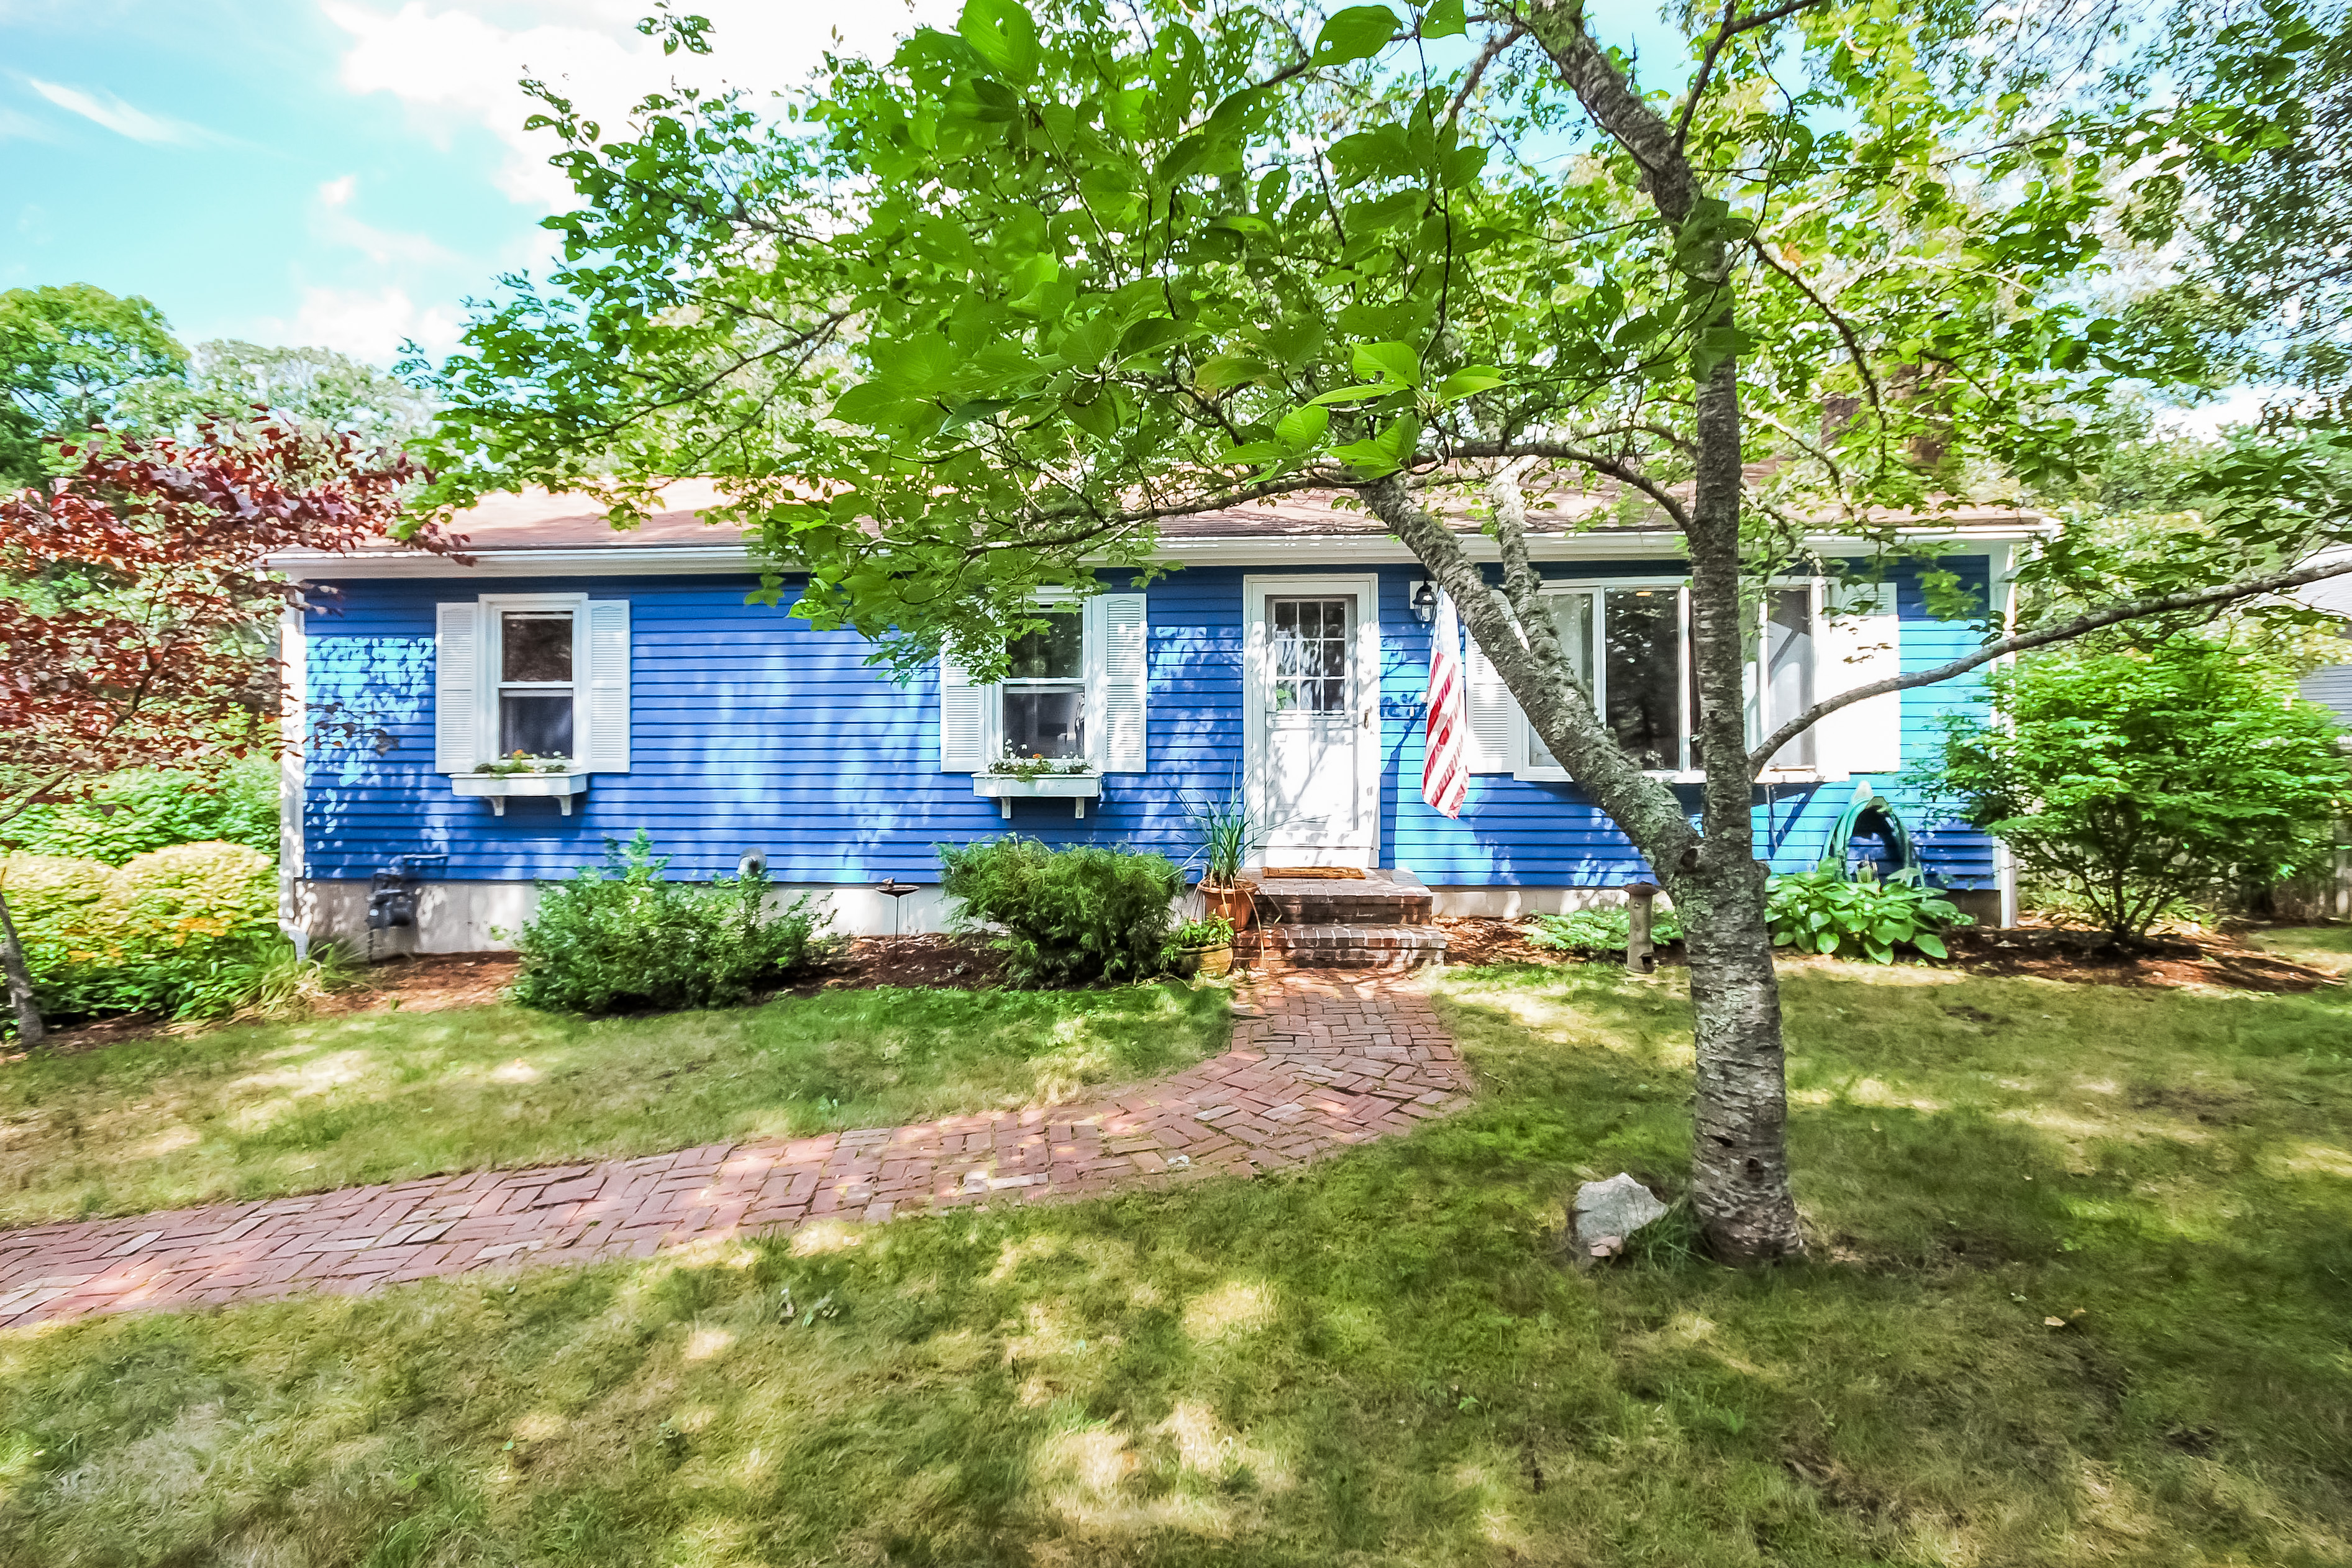 Single Family Home for Sale at 15 Pitch Pine Road, Brewster, MA Brewster, Massachusetts 02631 United States